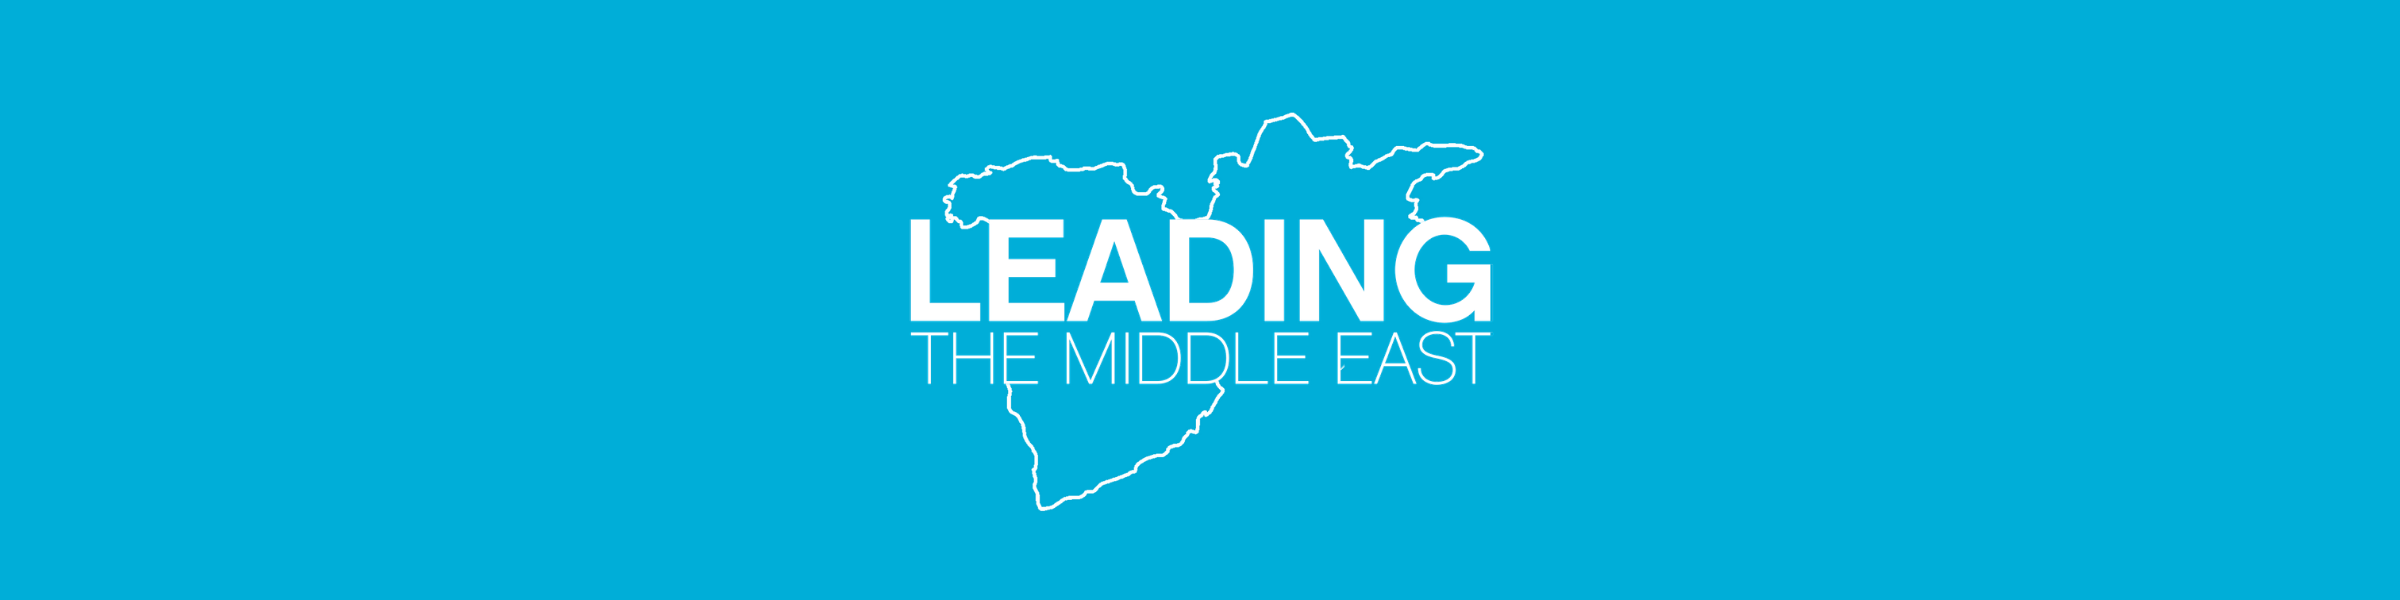 Leading Middle East